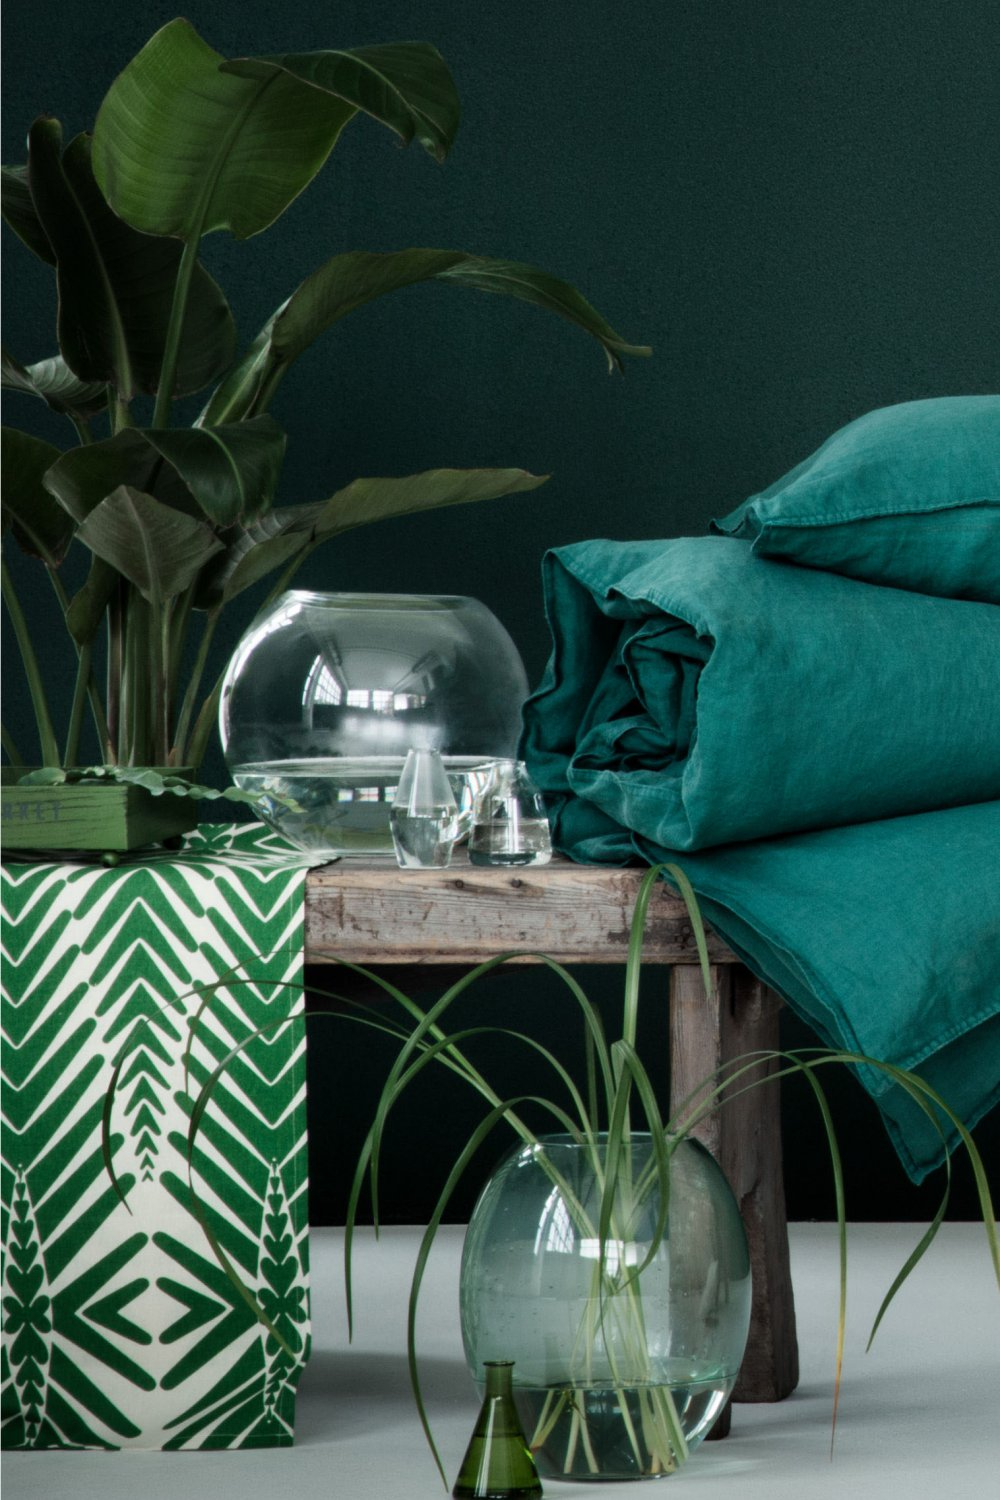 Deco Jungle Chic H&m Home : Un Style Urban Jungle Pour Le Printemps - Marie